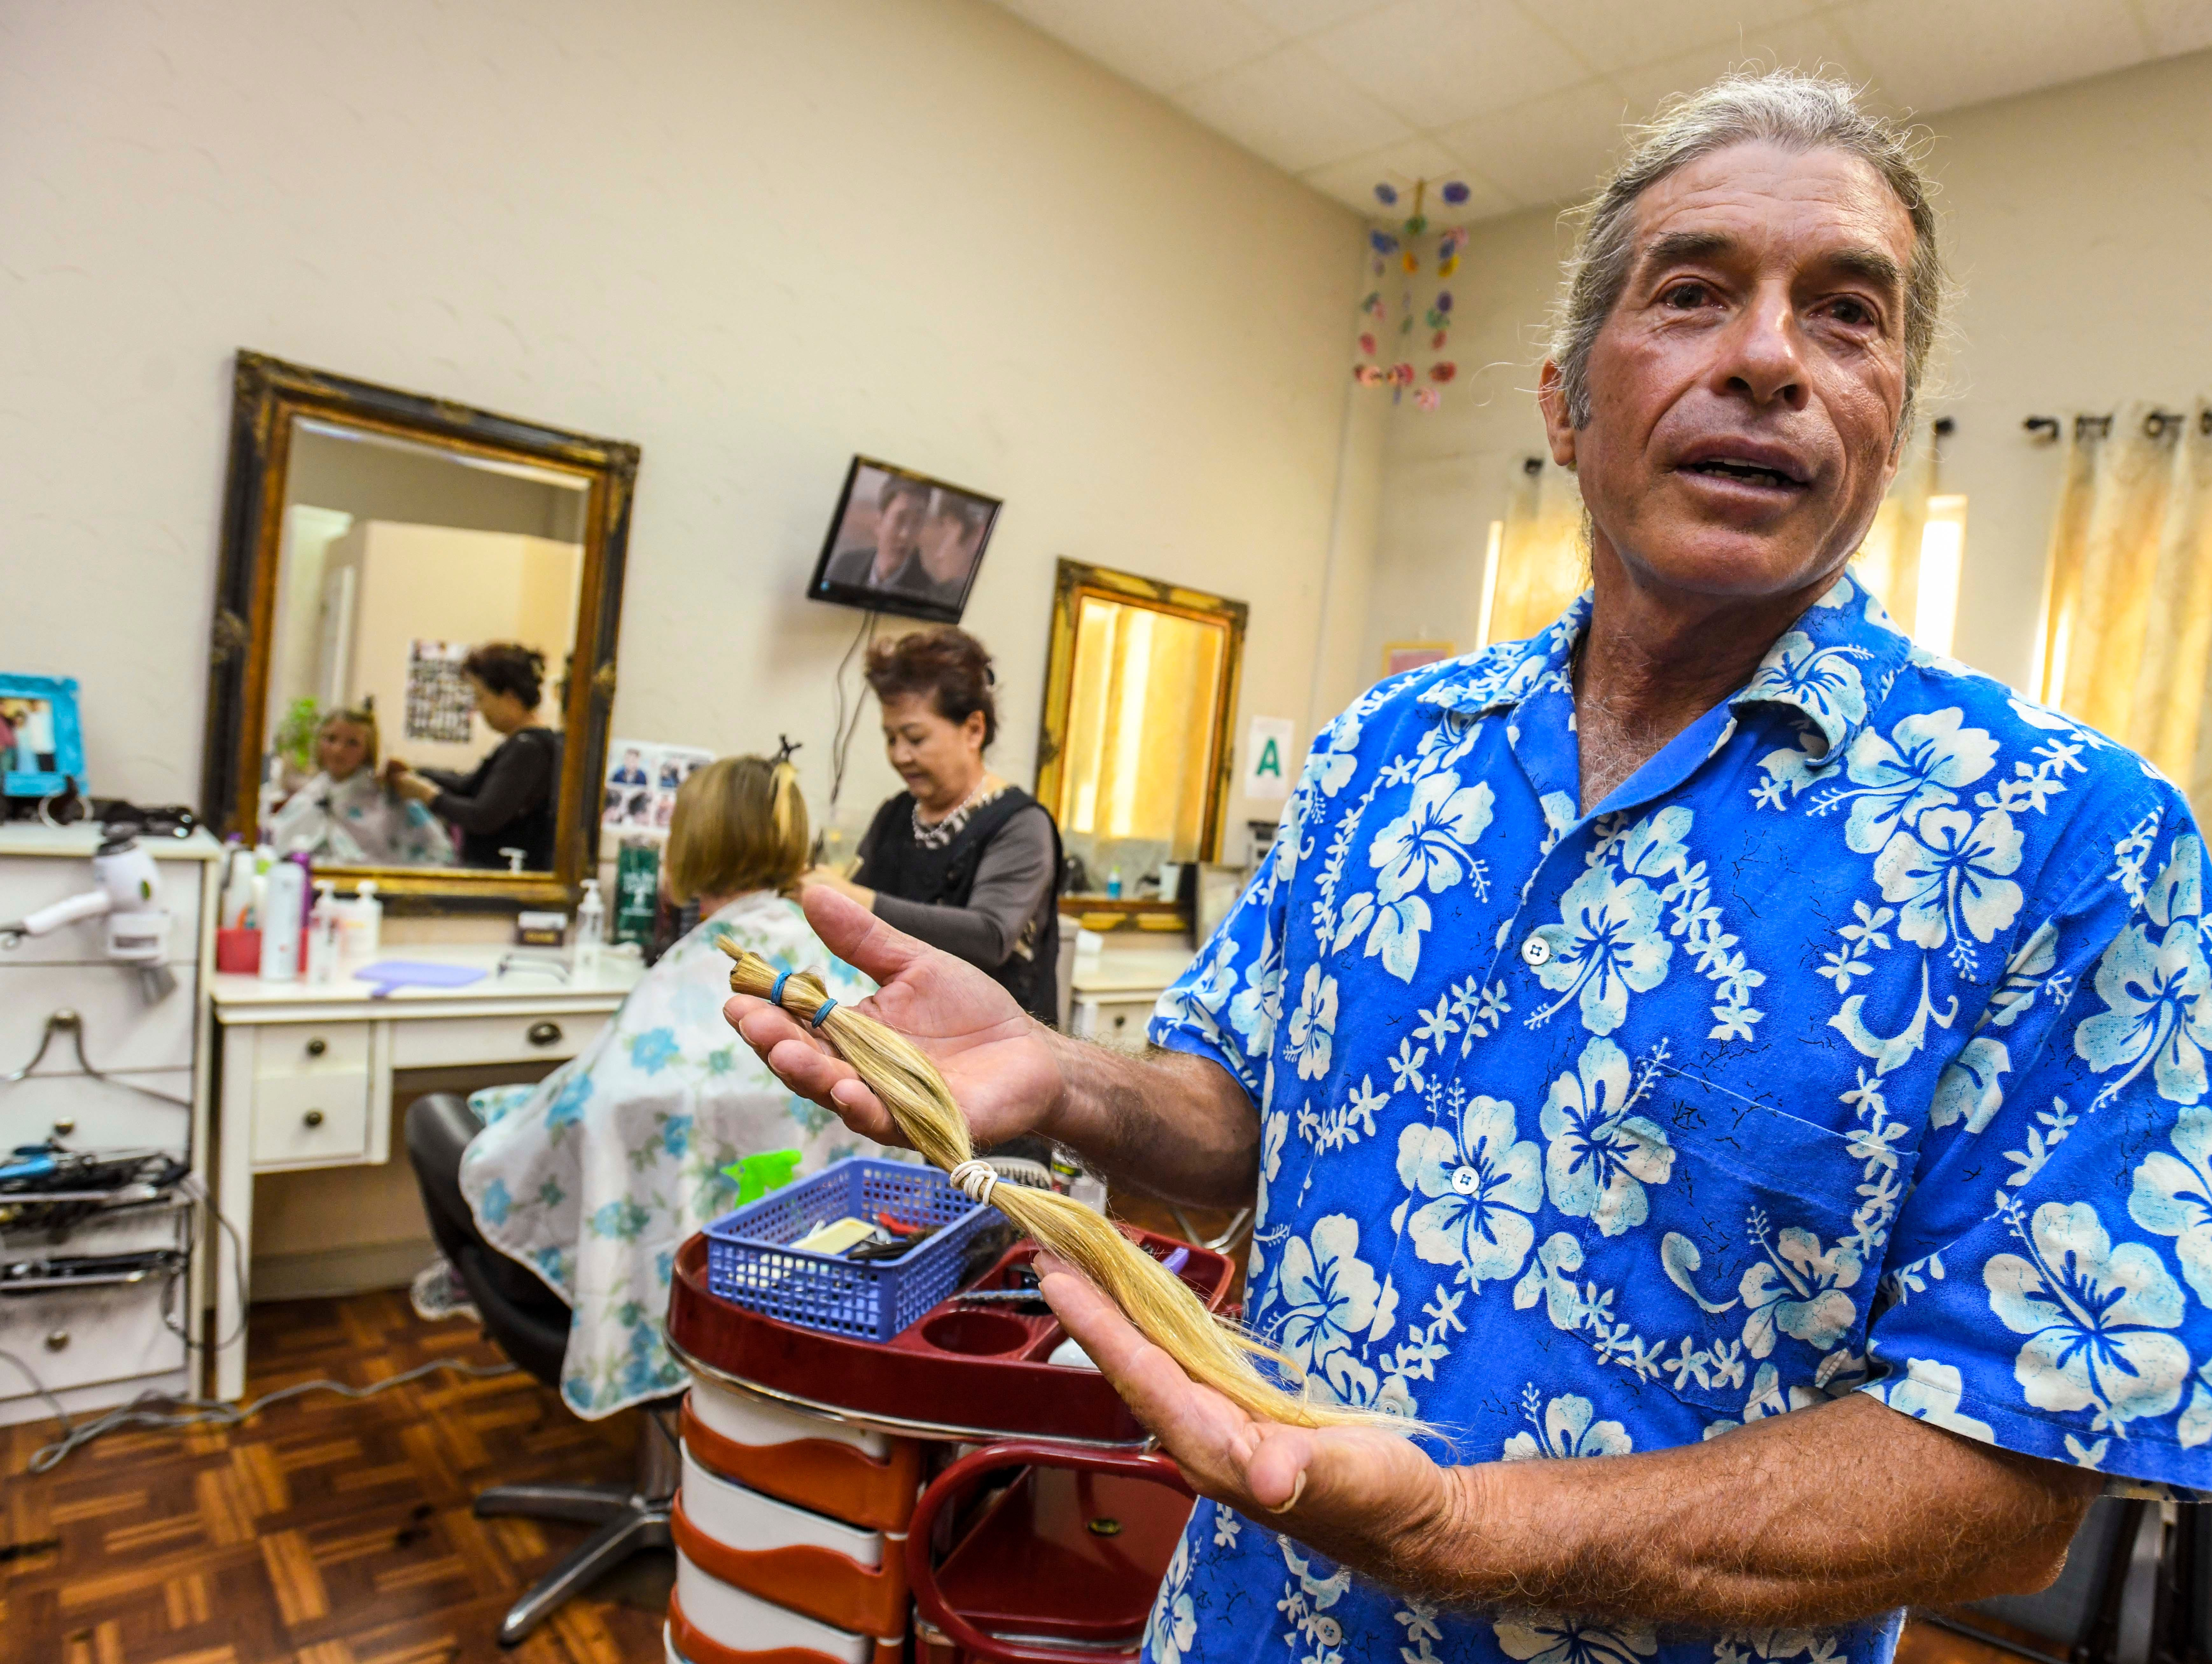 Shepherd DeBenedictis, front, holds a ponytail cut fromthe head of his daughter, Raylene DeBenedictis, 12, at the Grace Beauty Shop in Tamuning on Wednesday, Feb. 6, 2019. The father-daughter duo plan to donate separate locks of their hair to 360 Hair Inc. and Wigs for Kids, respectively, to be fabricated into wigs for people suffering from medical hair loss.